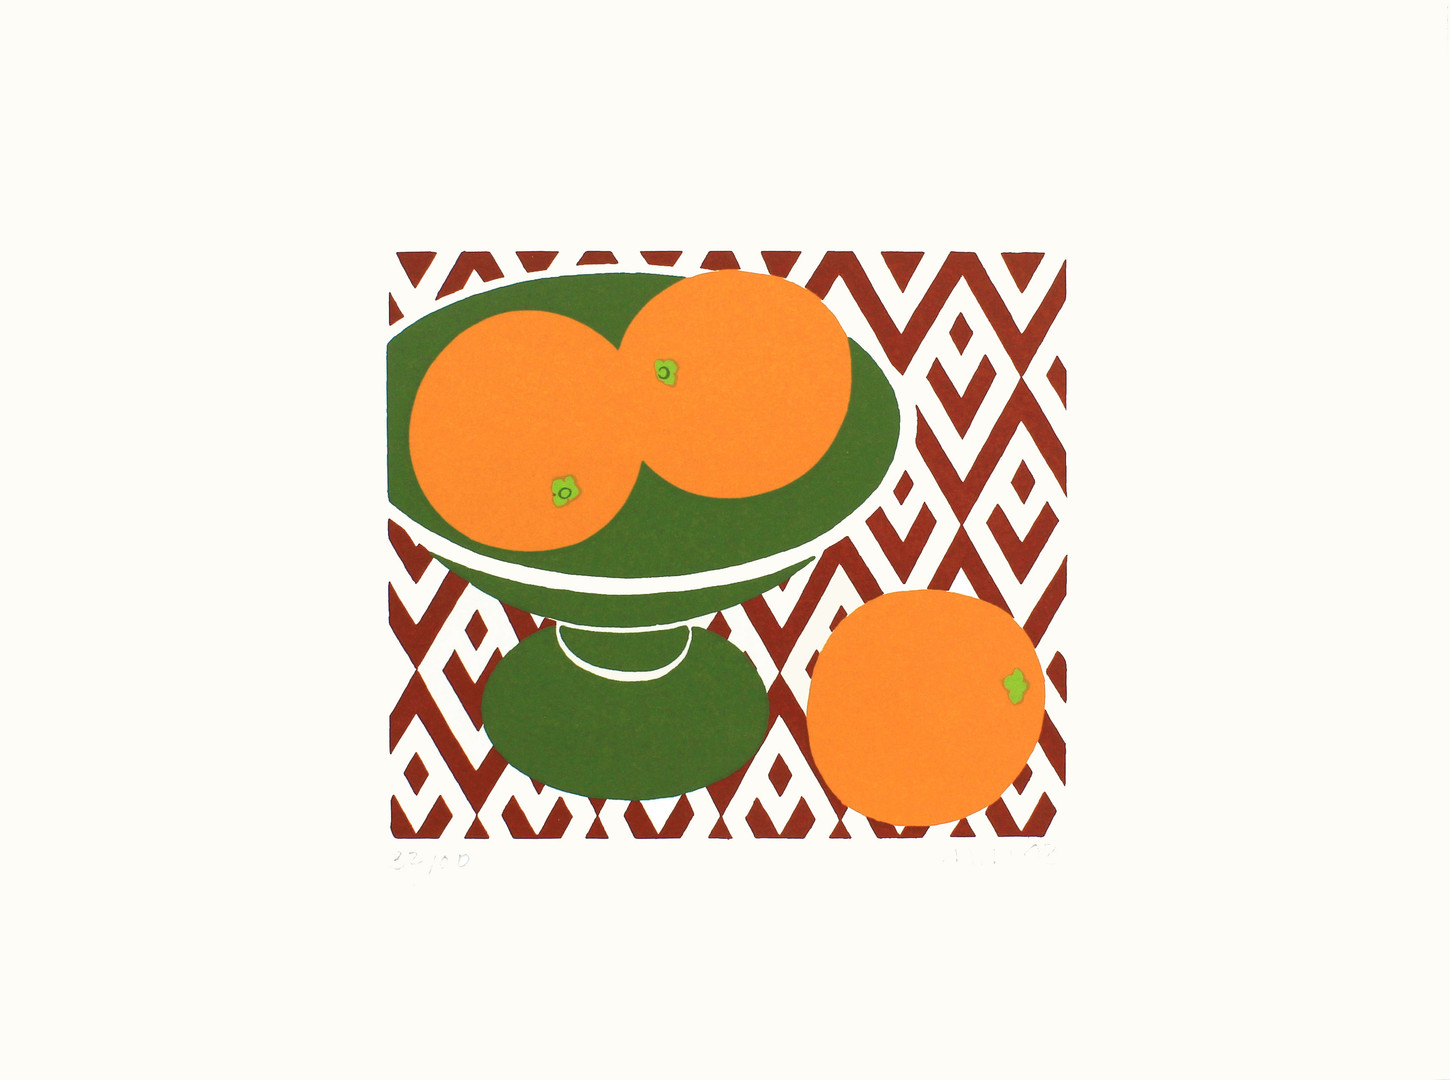 Three Oranges in a Green Dish